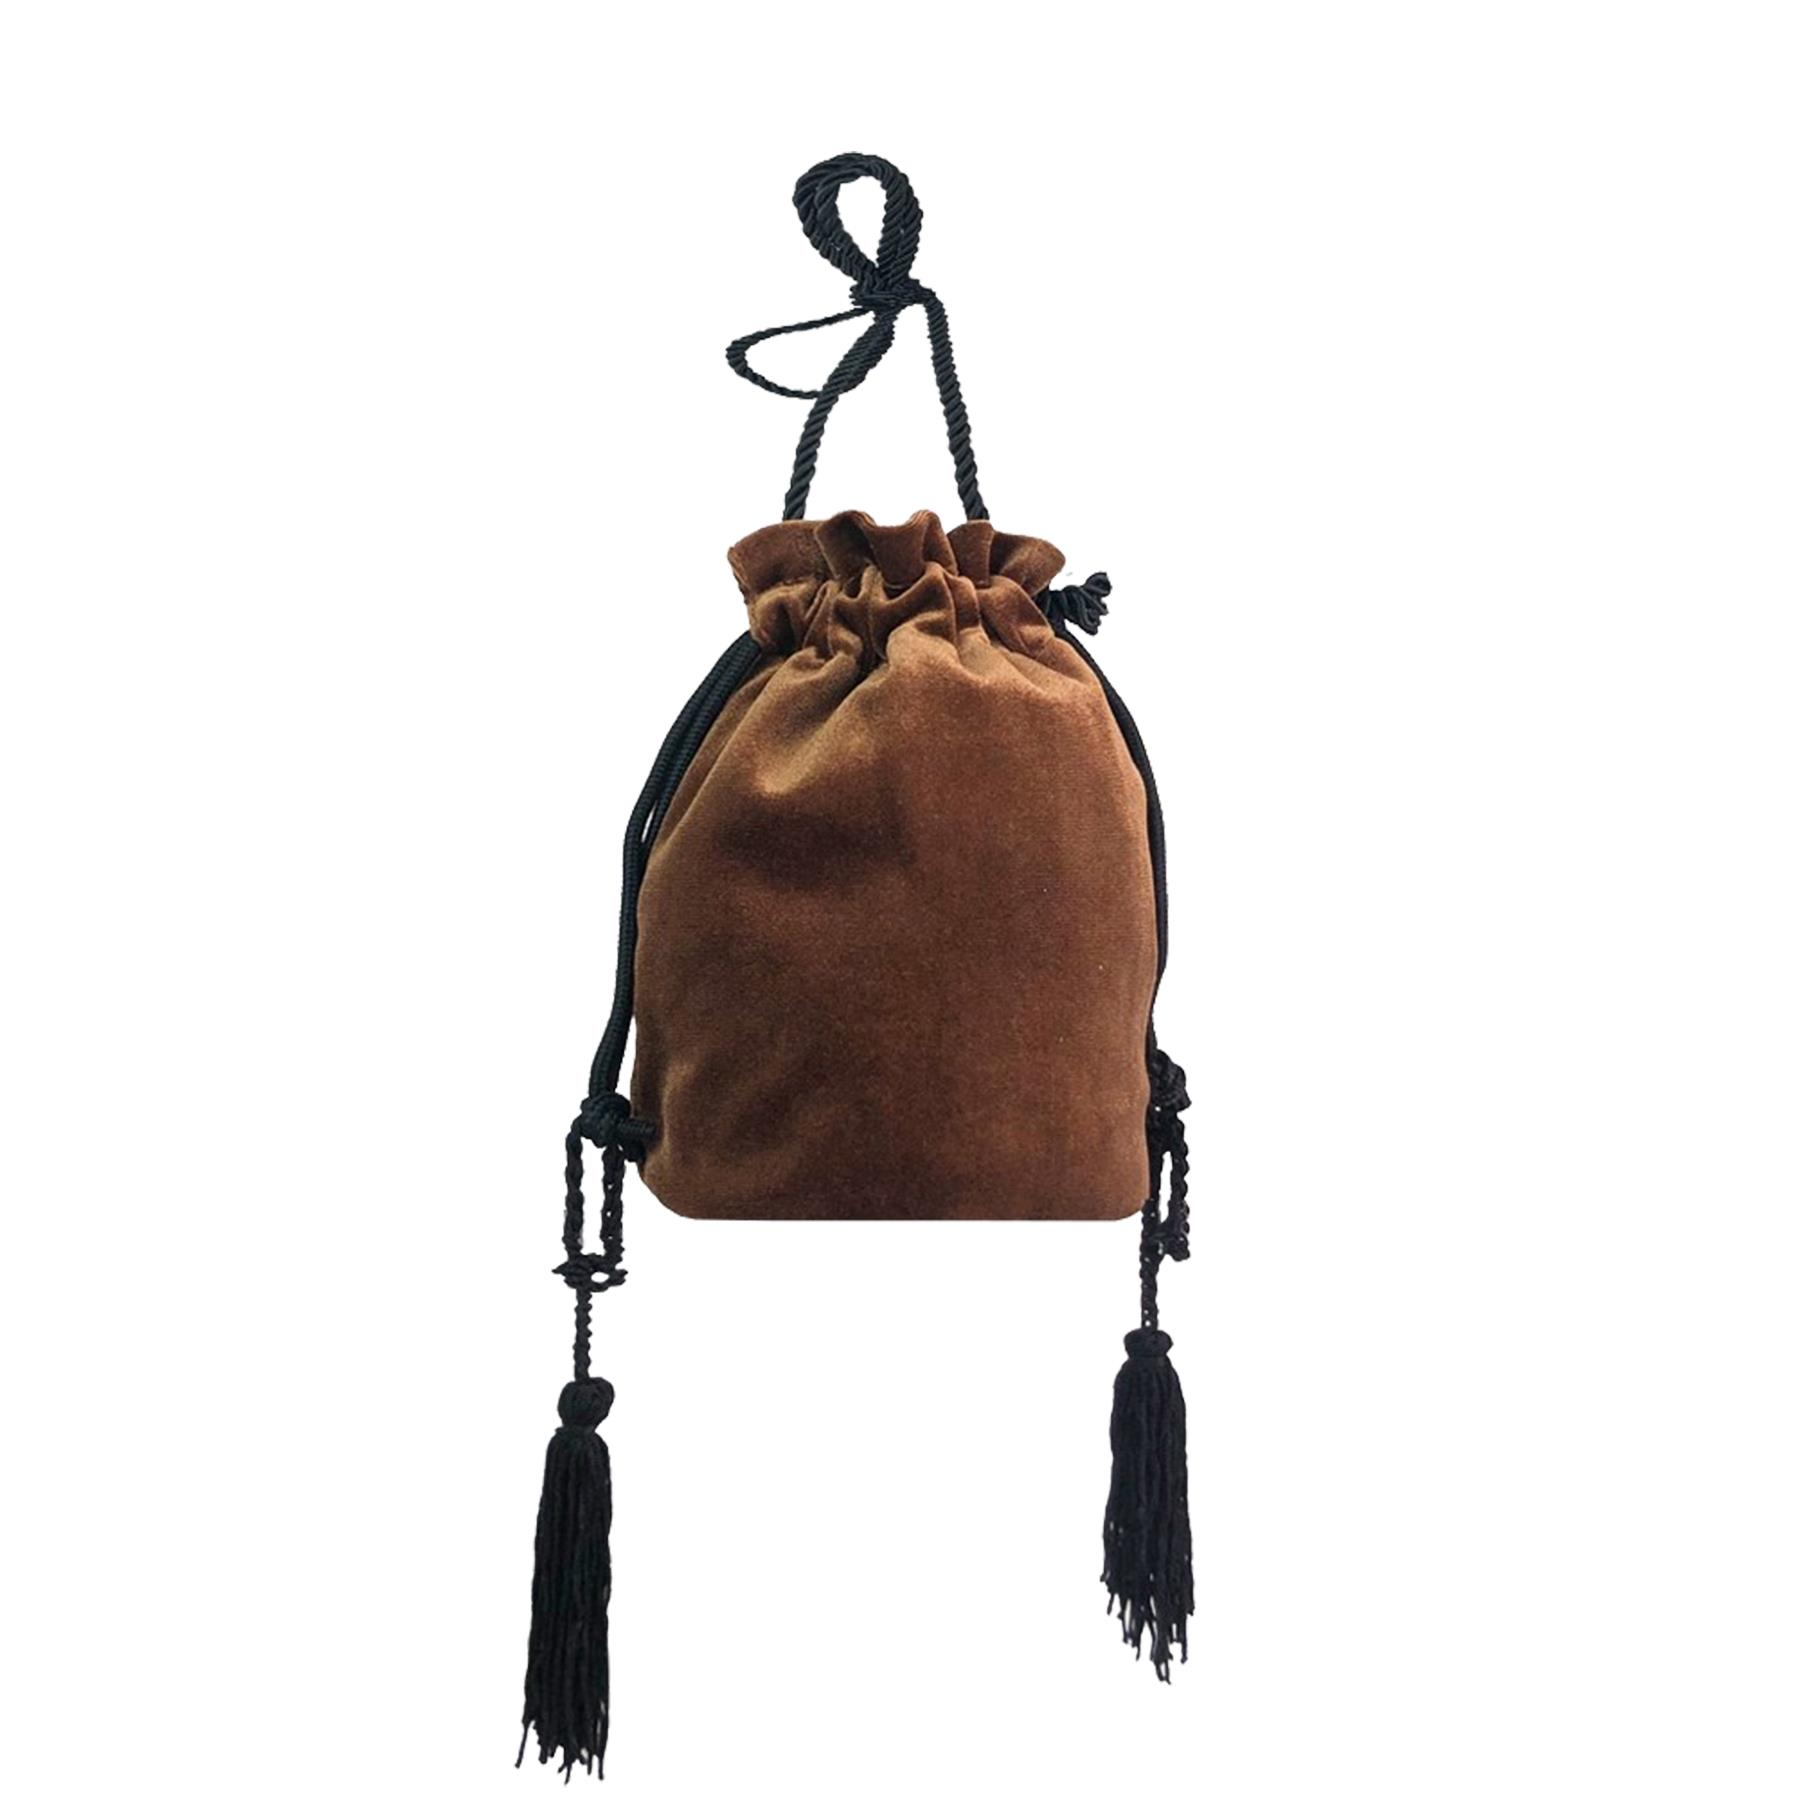 New-Women-s-Drawstring-Velvet-Velour-Tassels-Rope-Strap-Retro-Pouch-Bag thumbnail 3